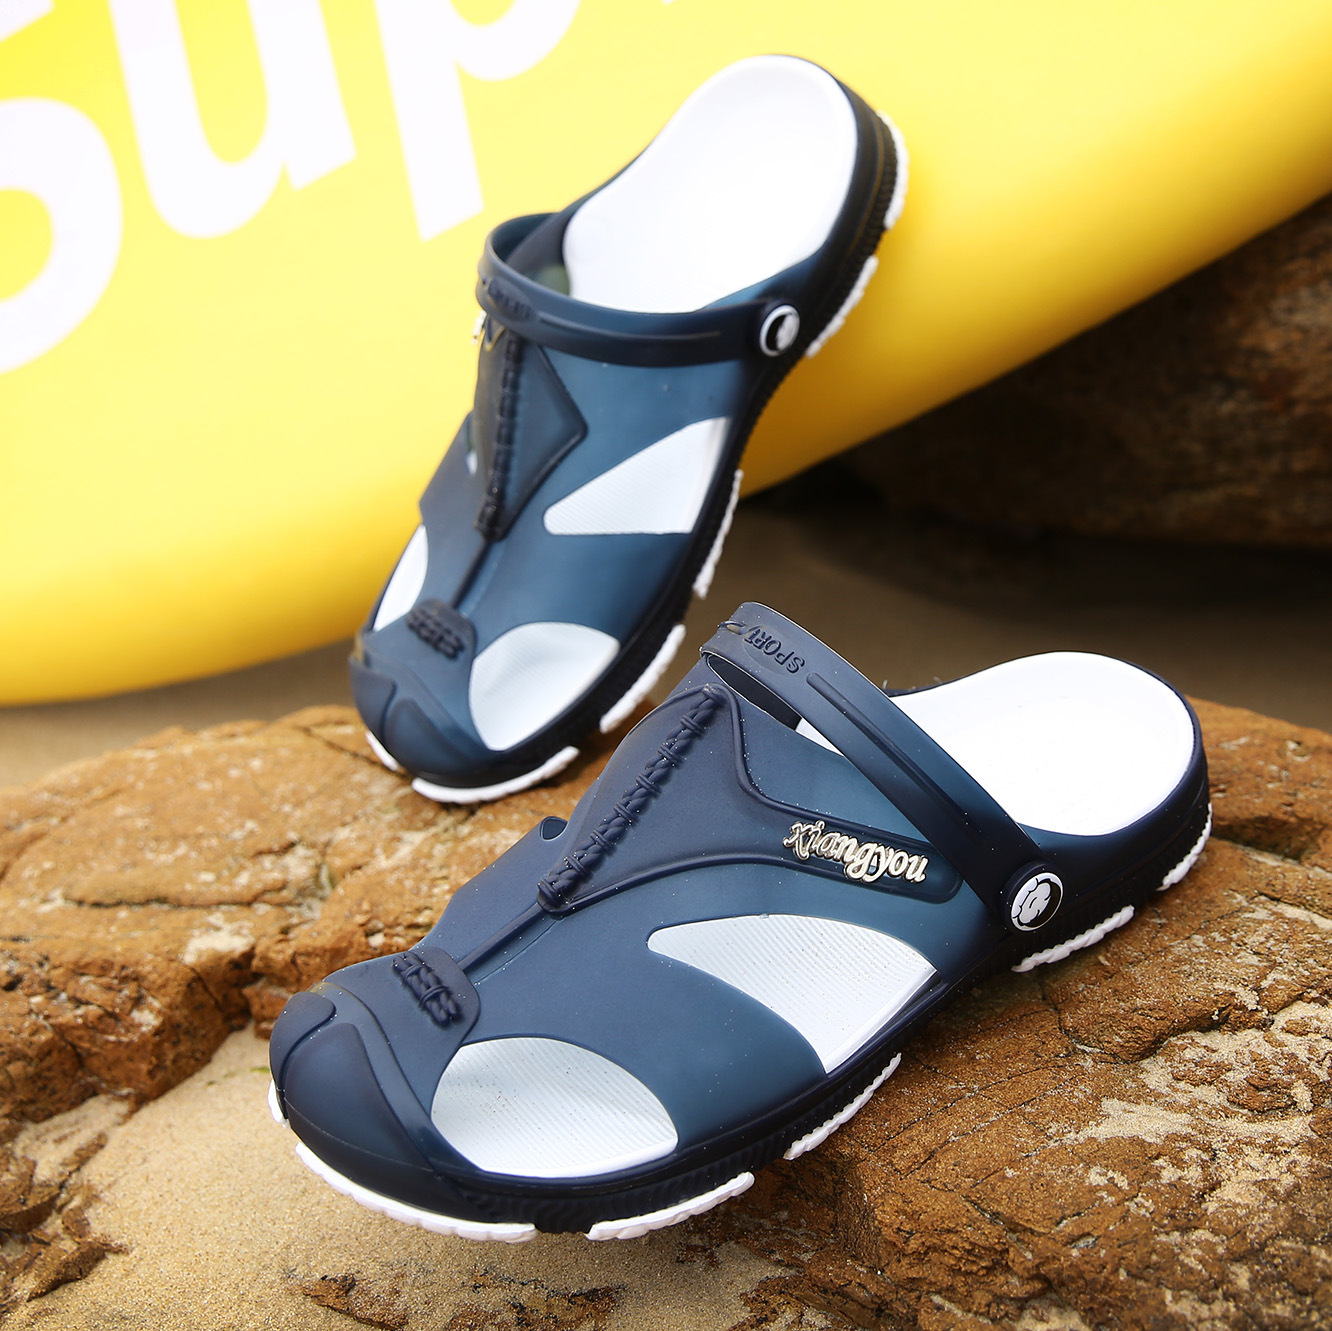 2019 NEW Men 39 s Sandals Summer Hollow Soft Bottom Beach Slippers Men Anti Slip Flip Flops Male Sandals Water Shoes in Men 39 s Sandals from Shoes